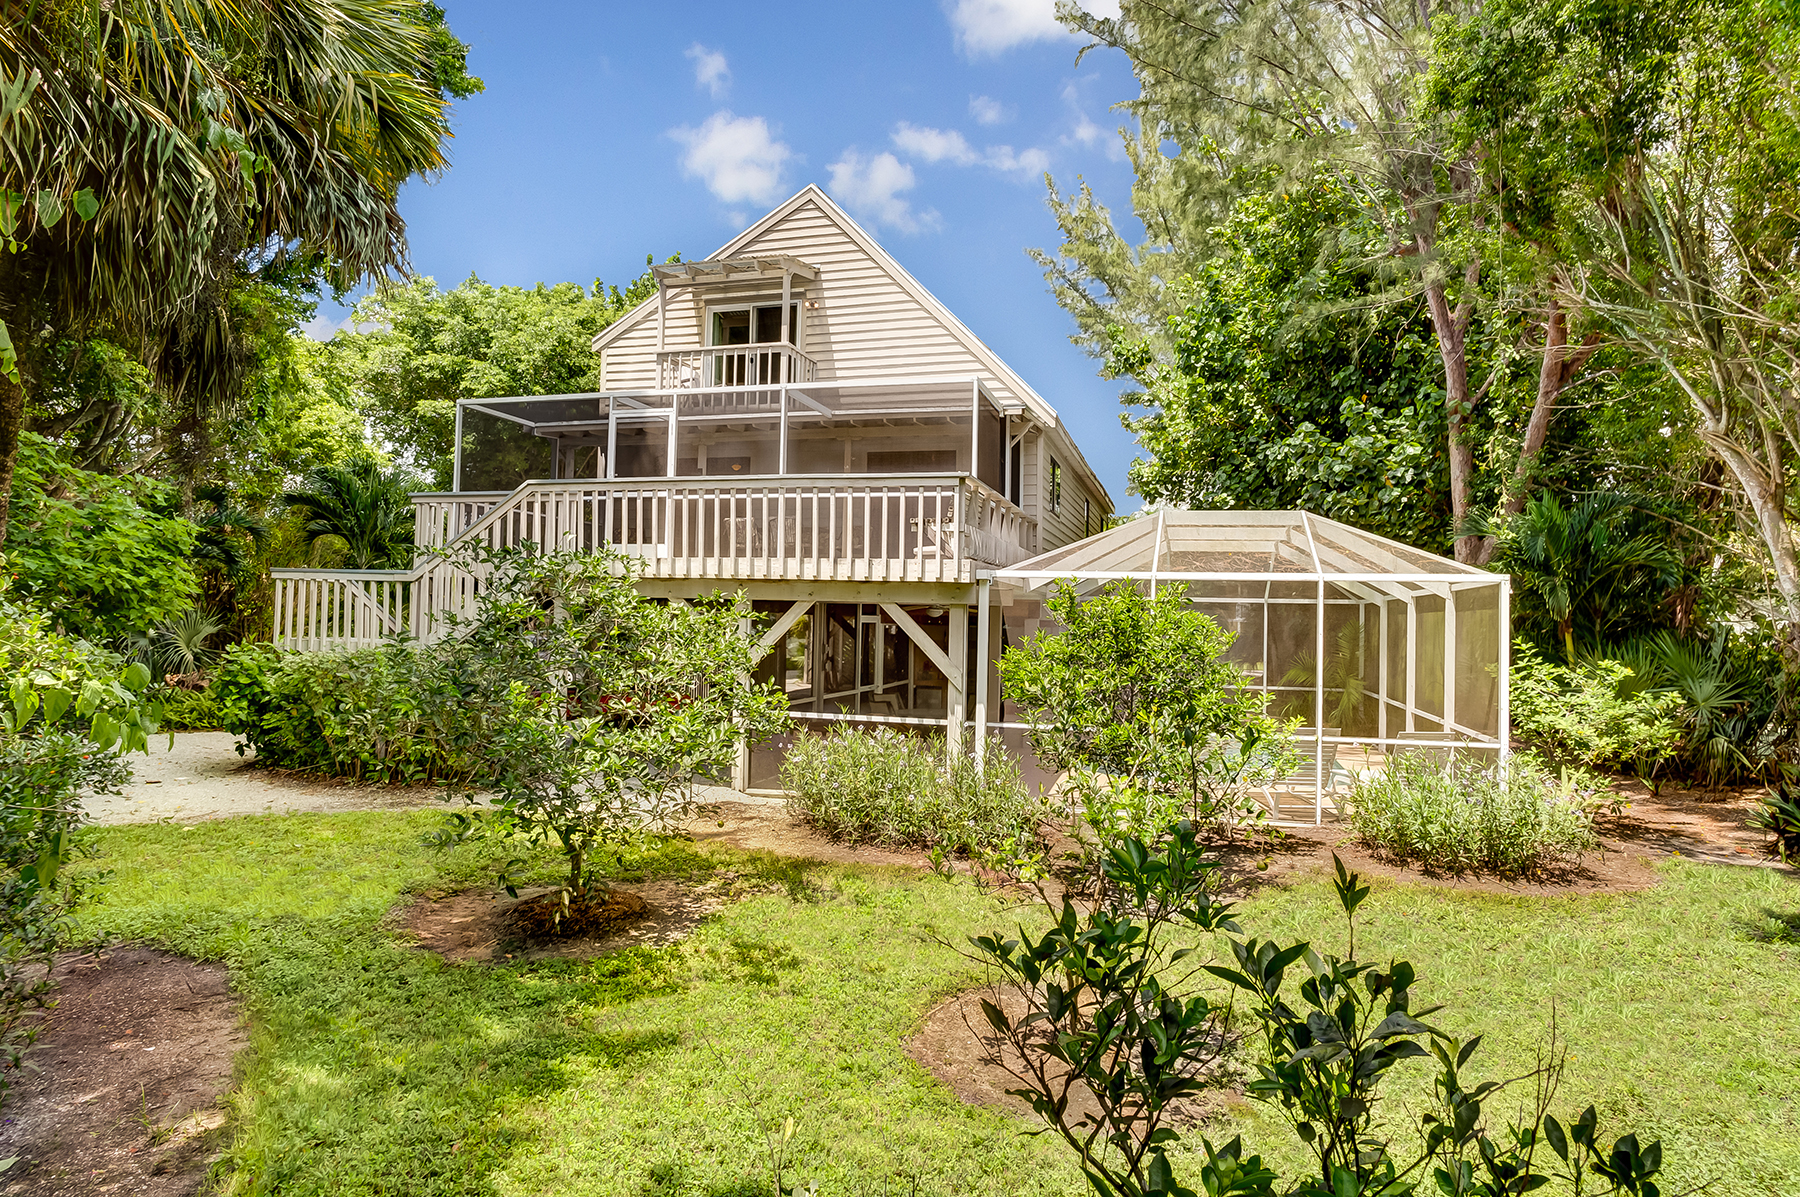 Single Family Home for Sale at SANIBEL 1040 Sand Castle Rd Sanibel, Florida, 33957 United States